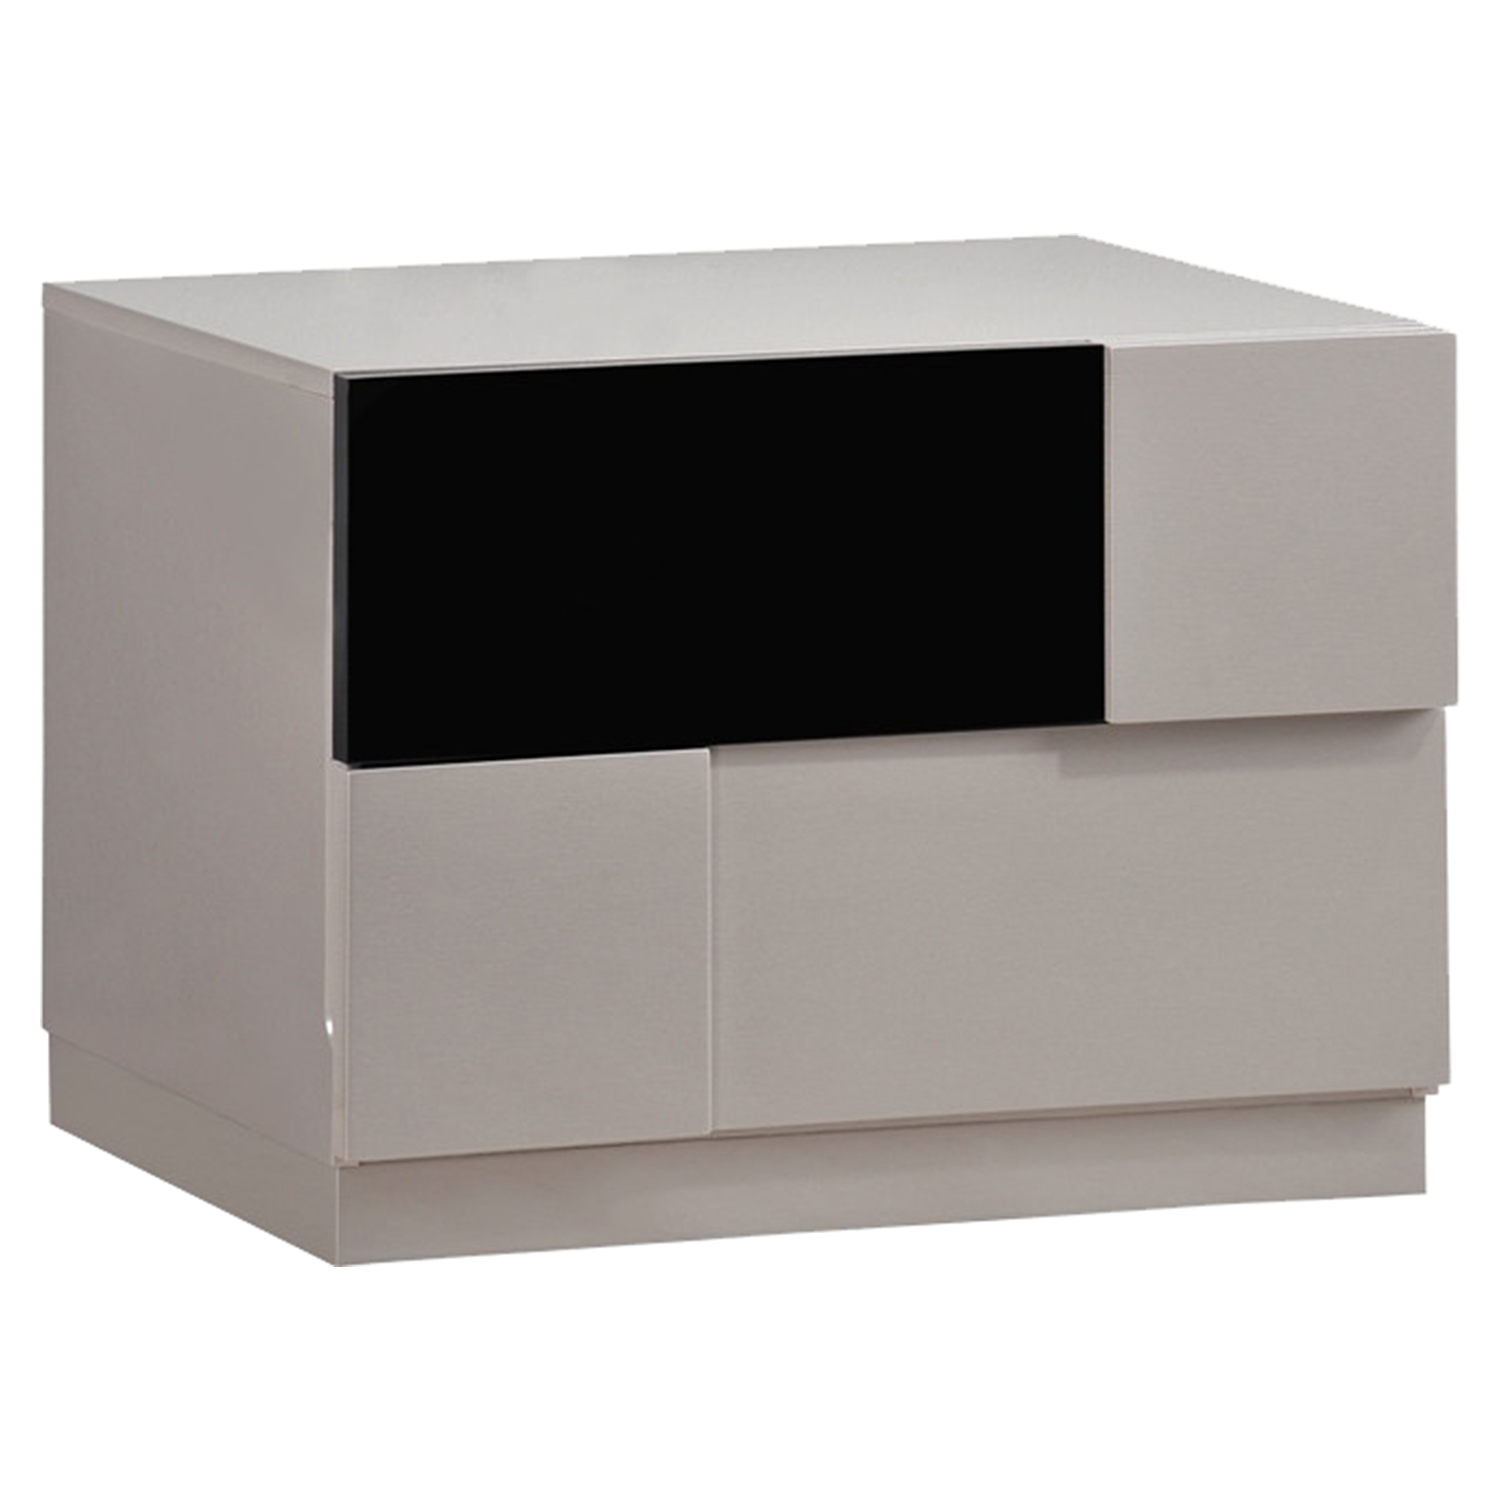 Bianca Nightstand, High Gloss Gray and Black